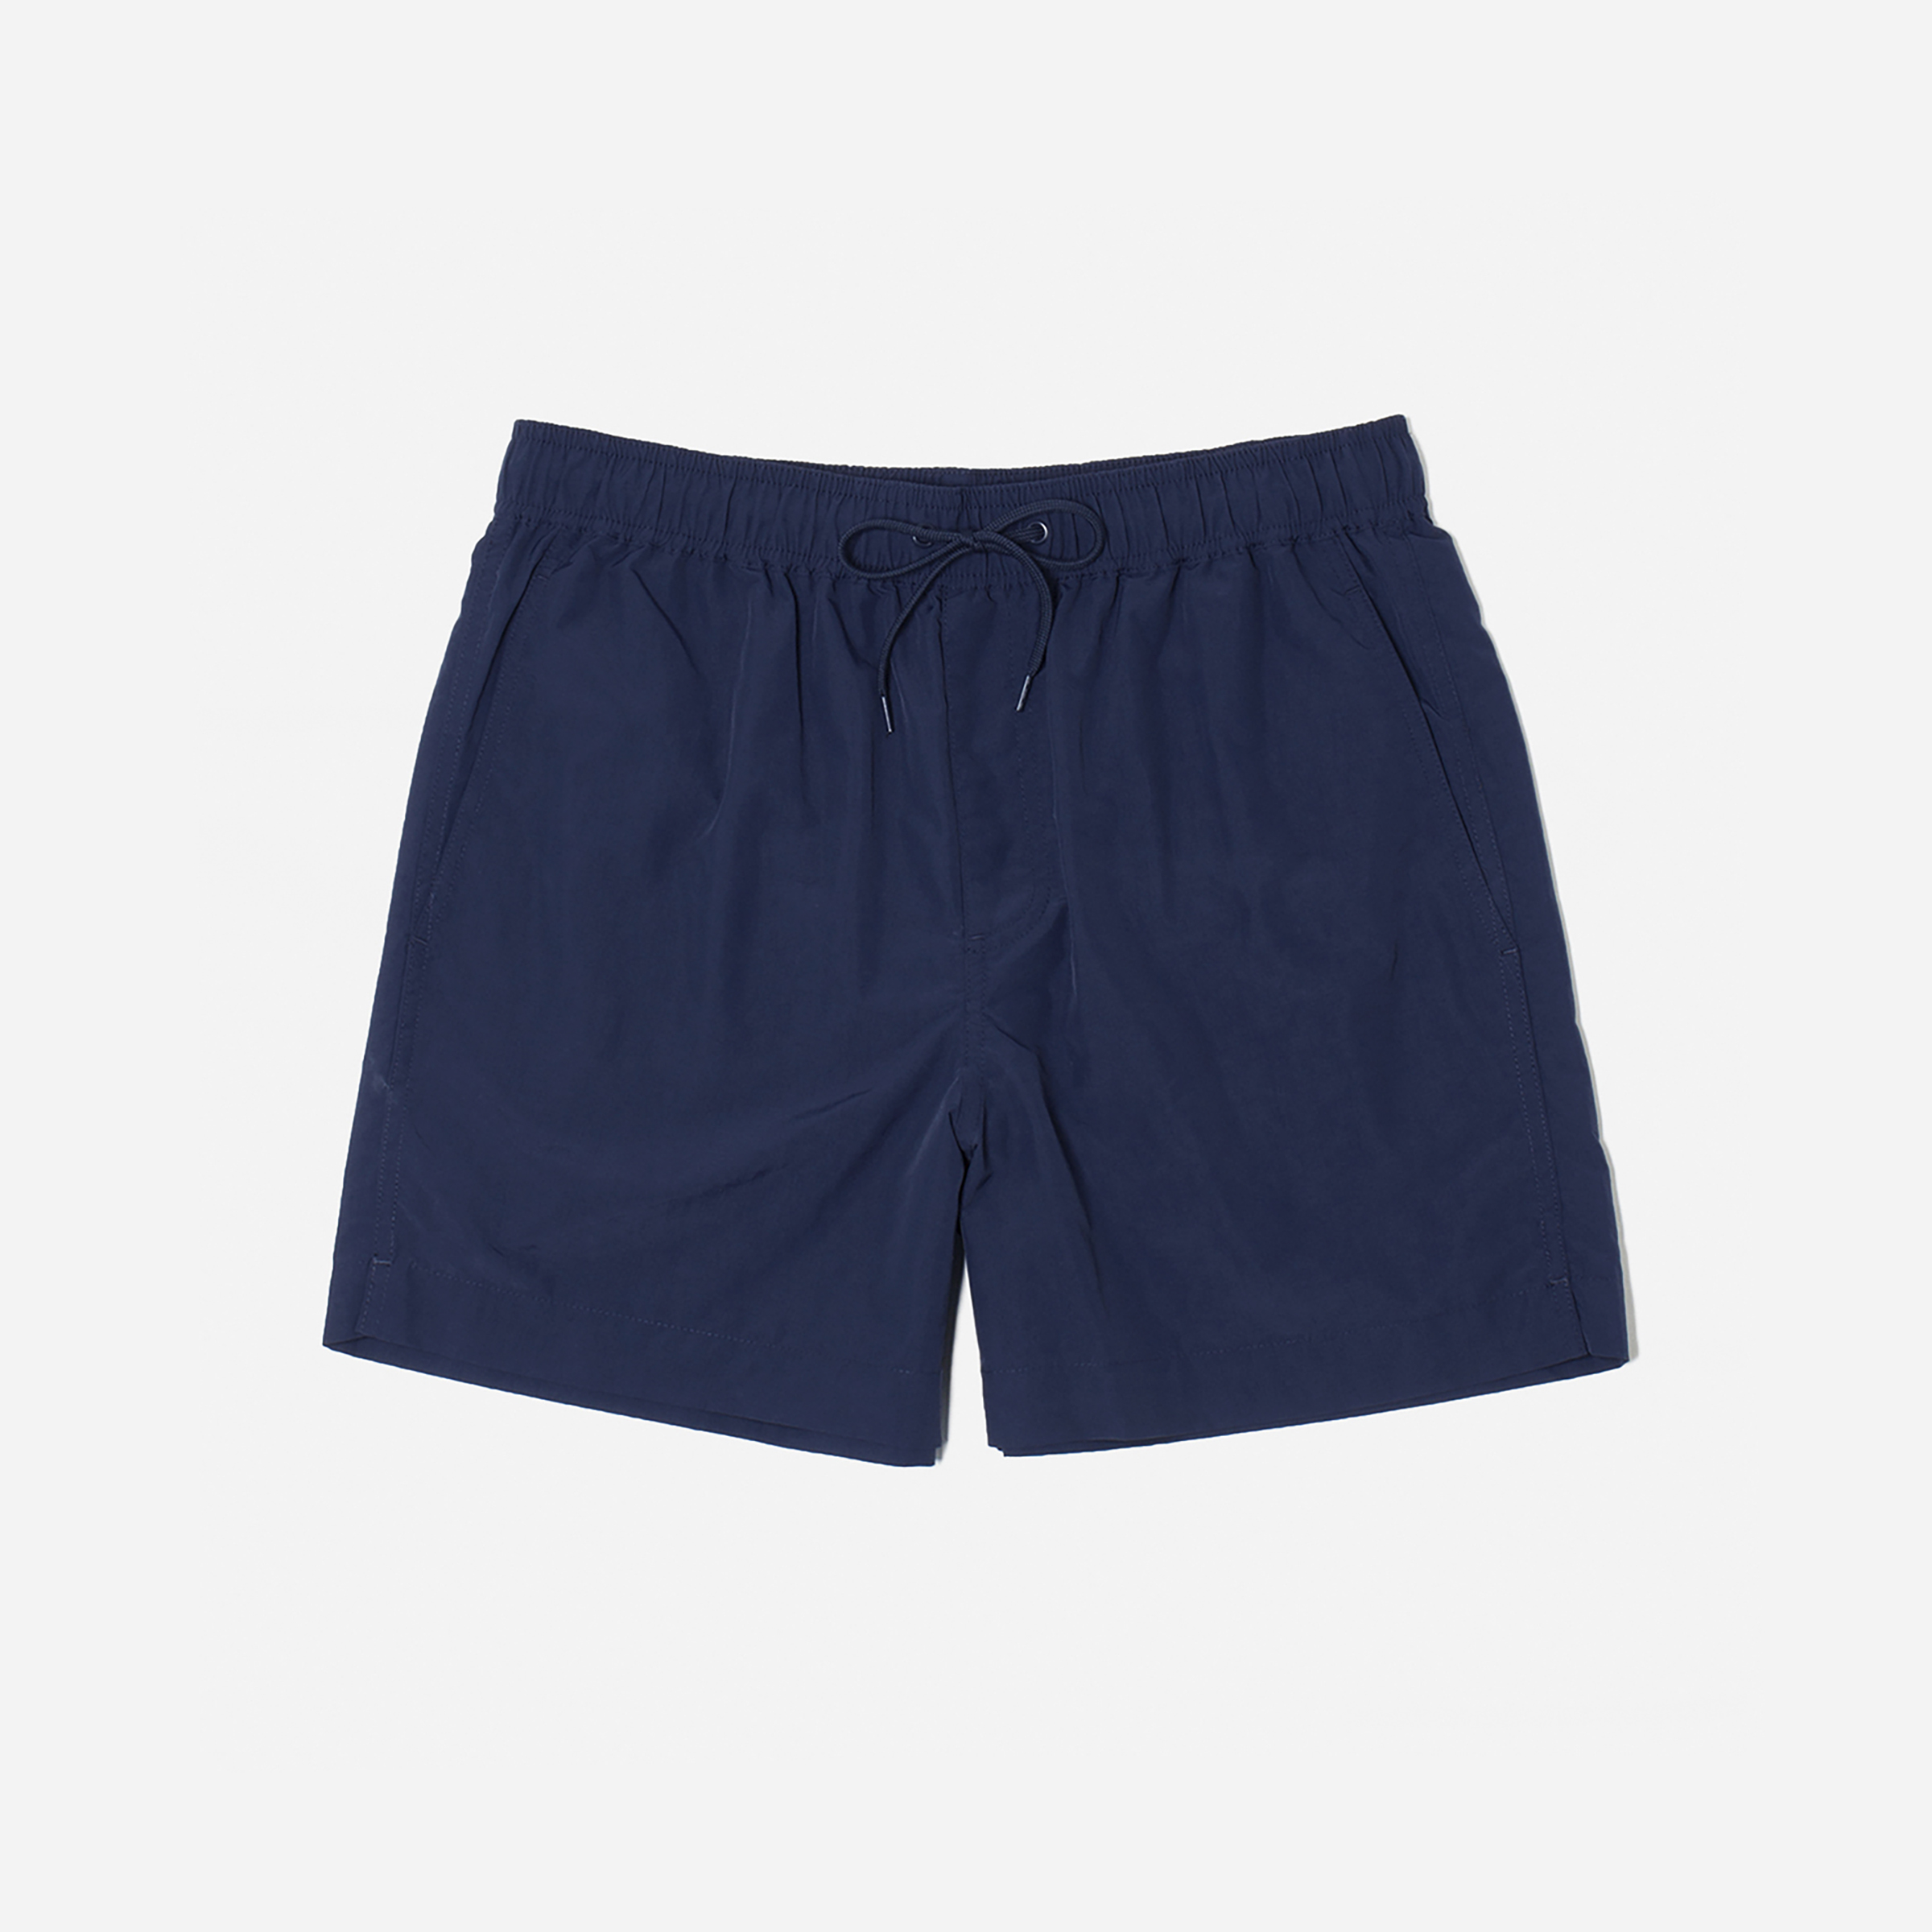 swim shorts the swim short - $45 vqetwon